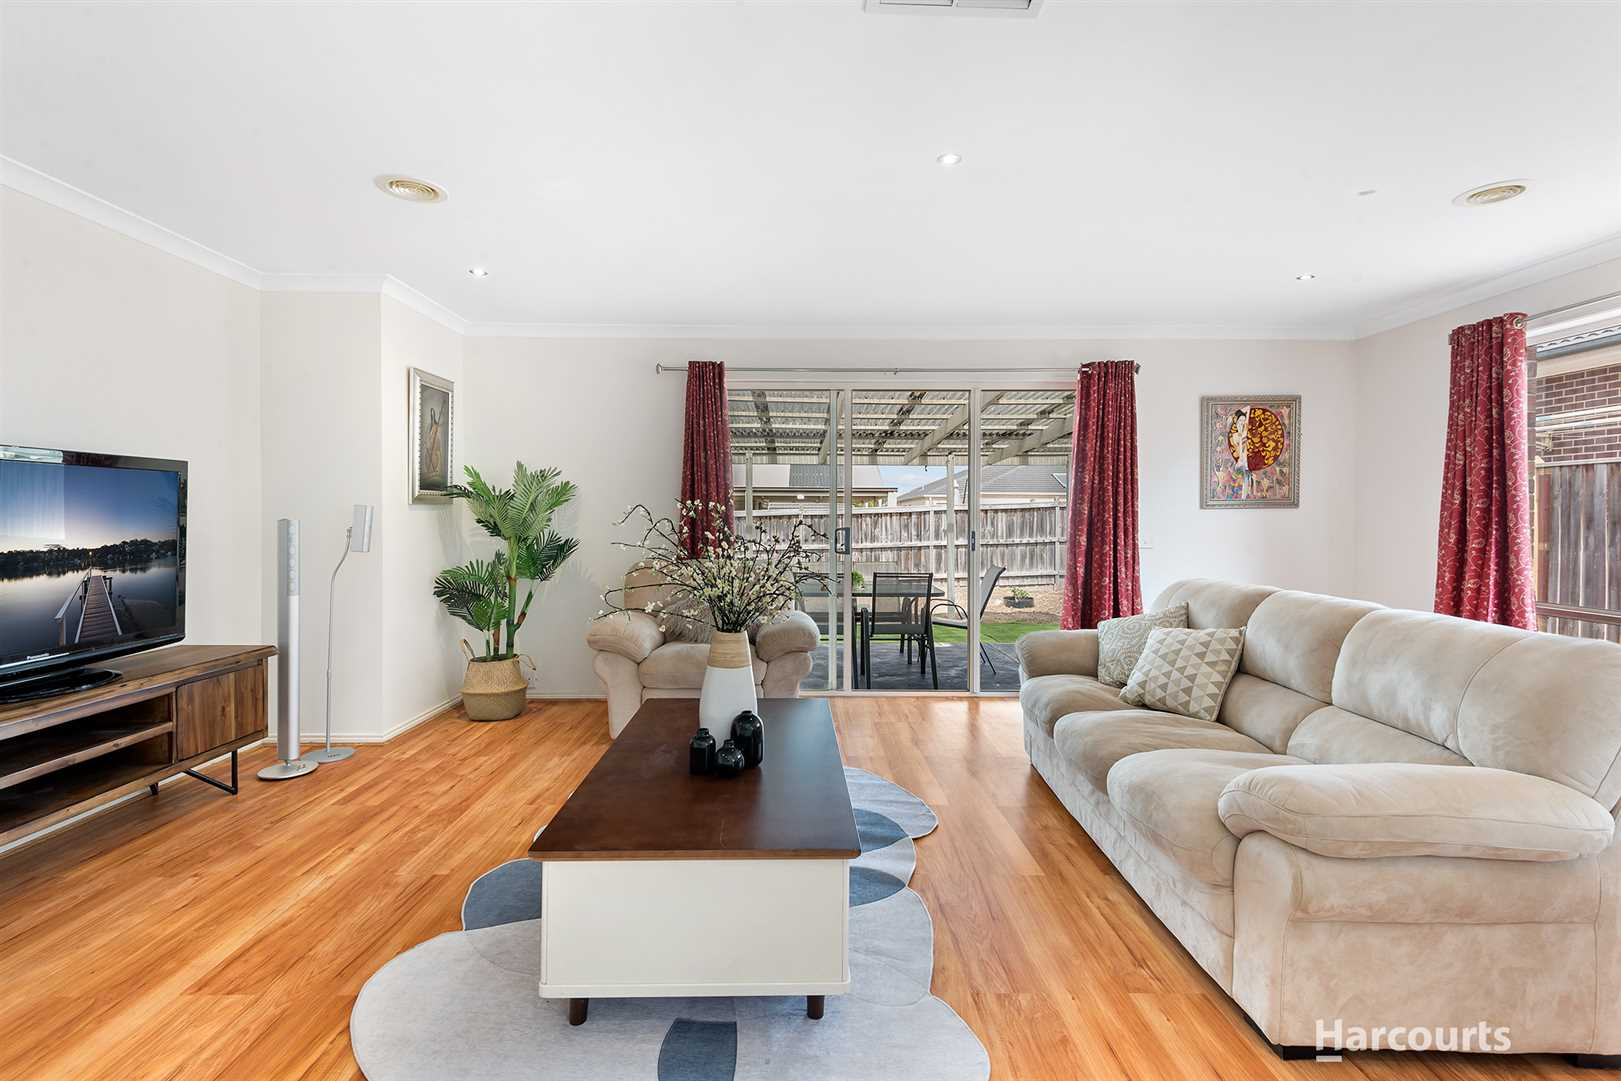 Spacious and Light Filled Family Gem